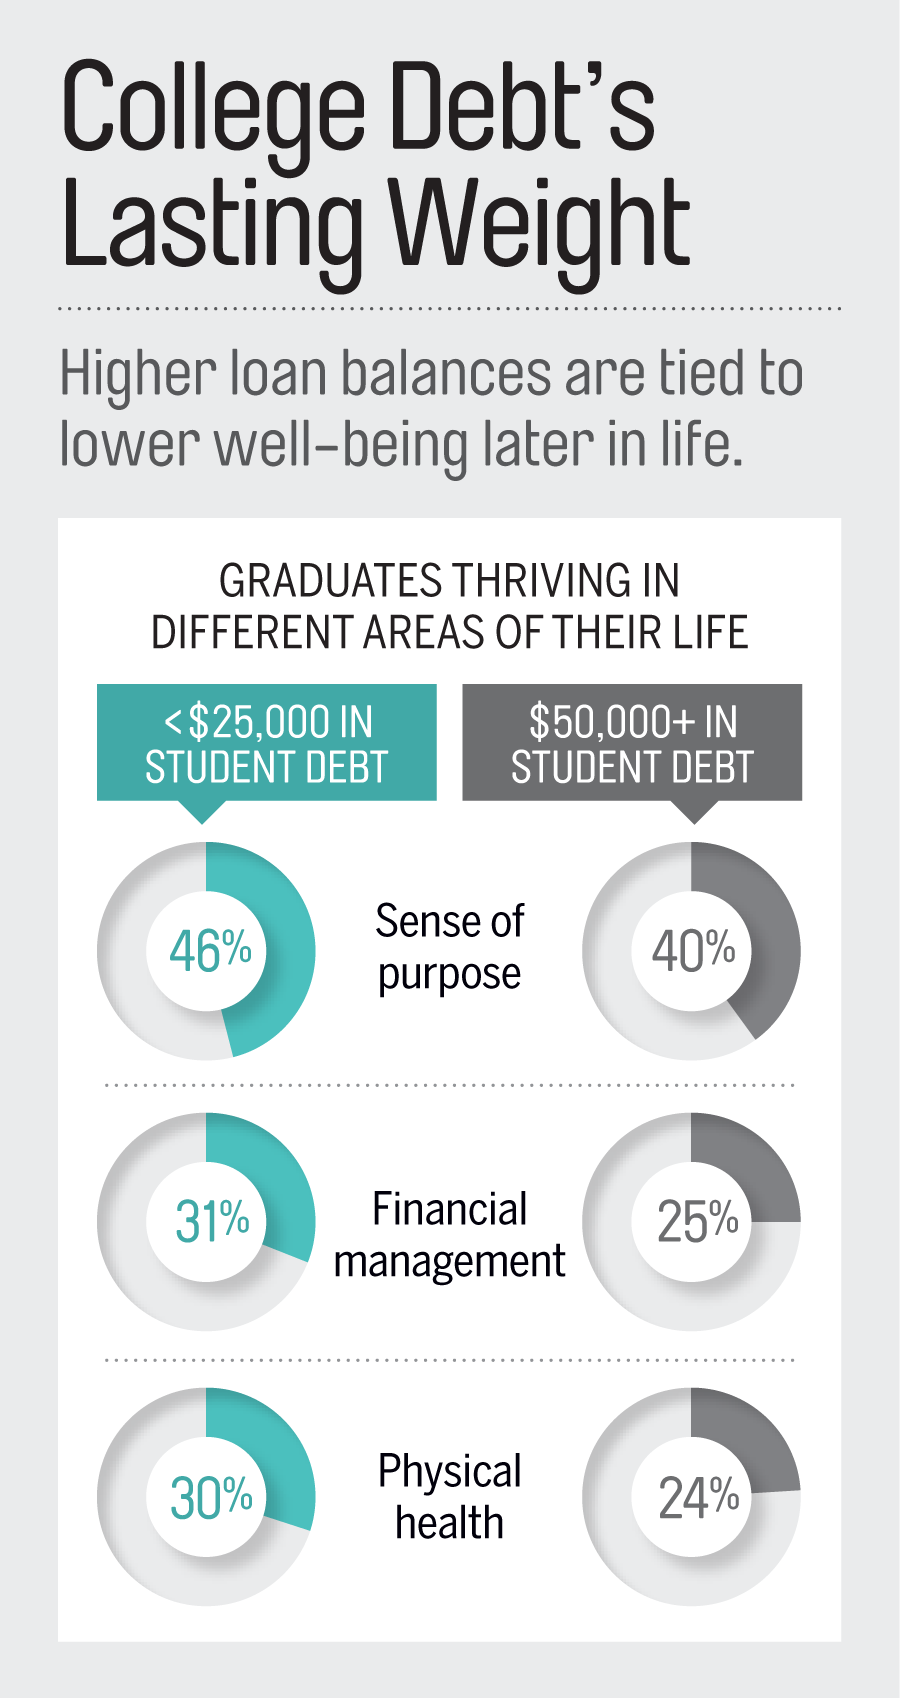 """Notes: Based on self-reports of """"thriving"""" in a particular area, vs. """"struggling"""" or """"suffering."""" Amounts are for undergraduate debt only. Source: Gallup, 2014"""